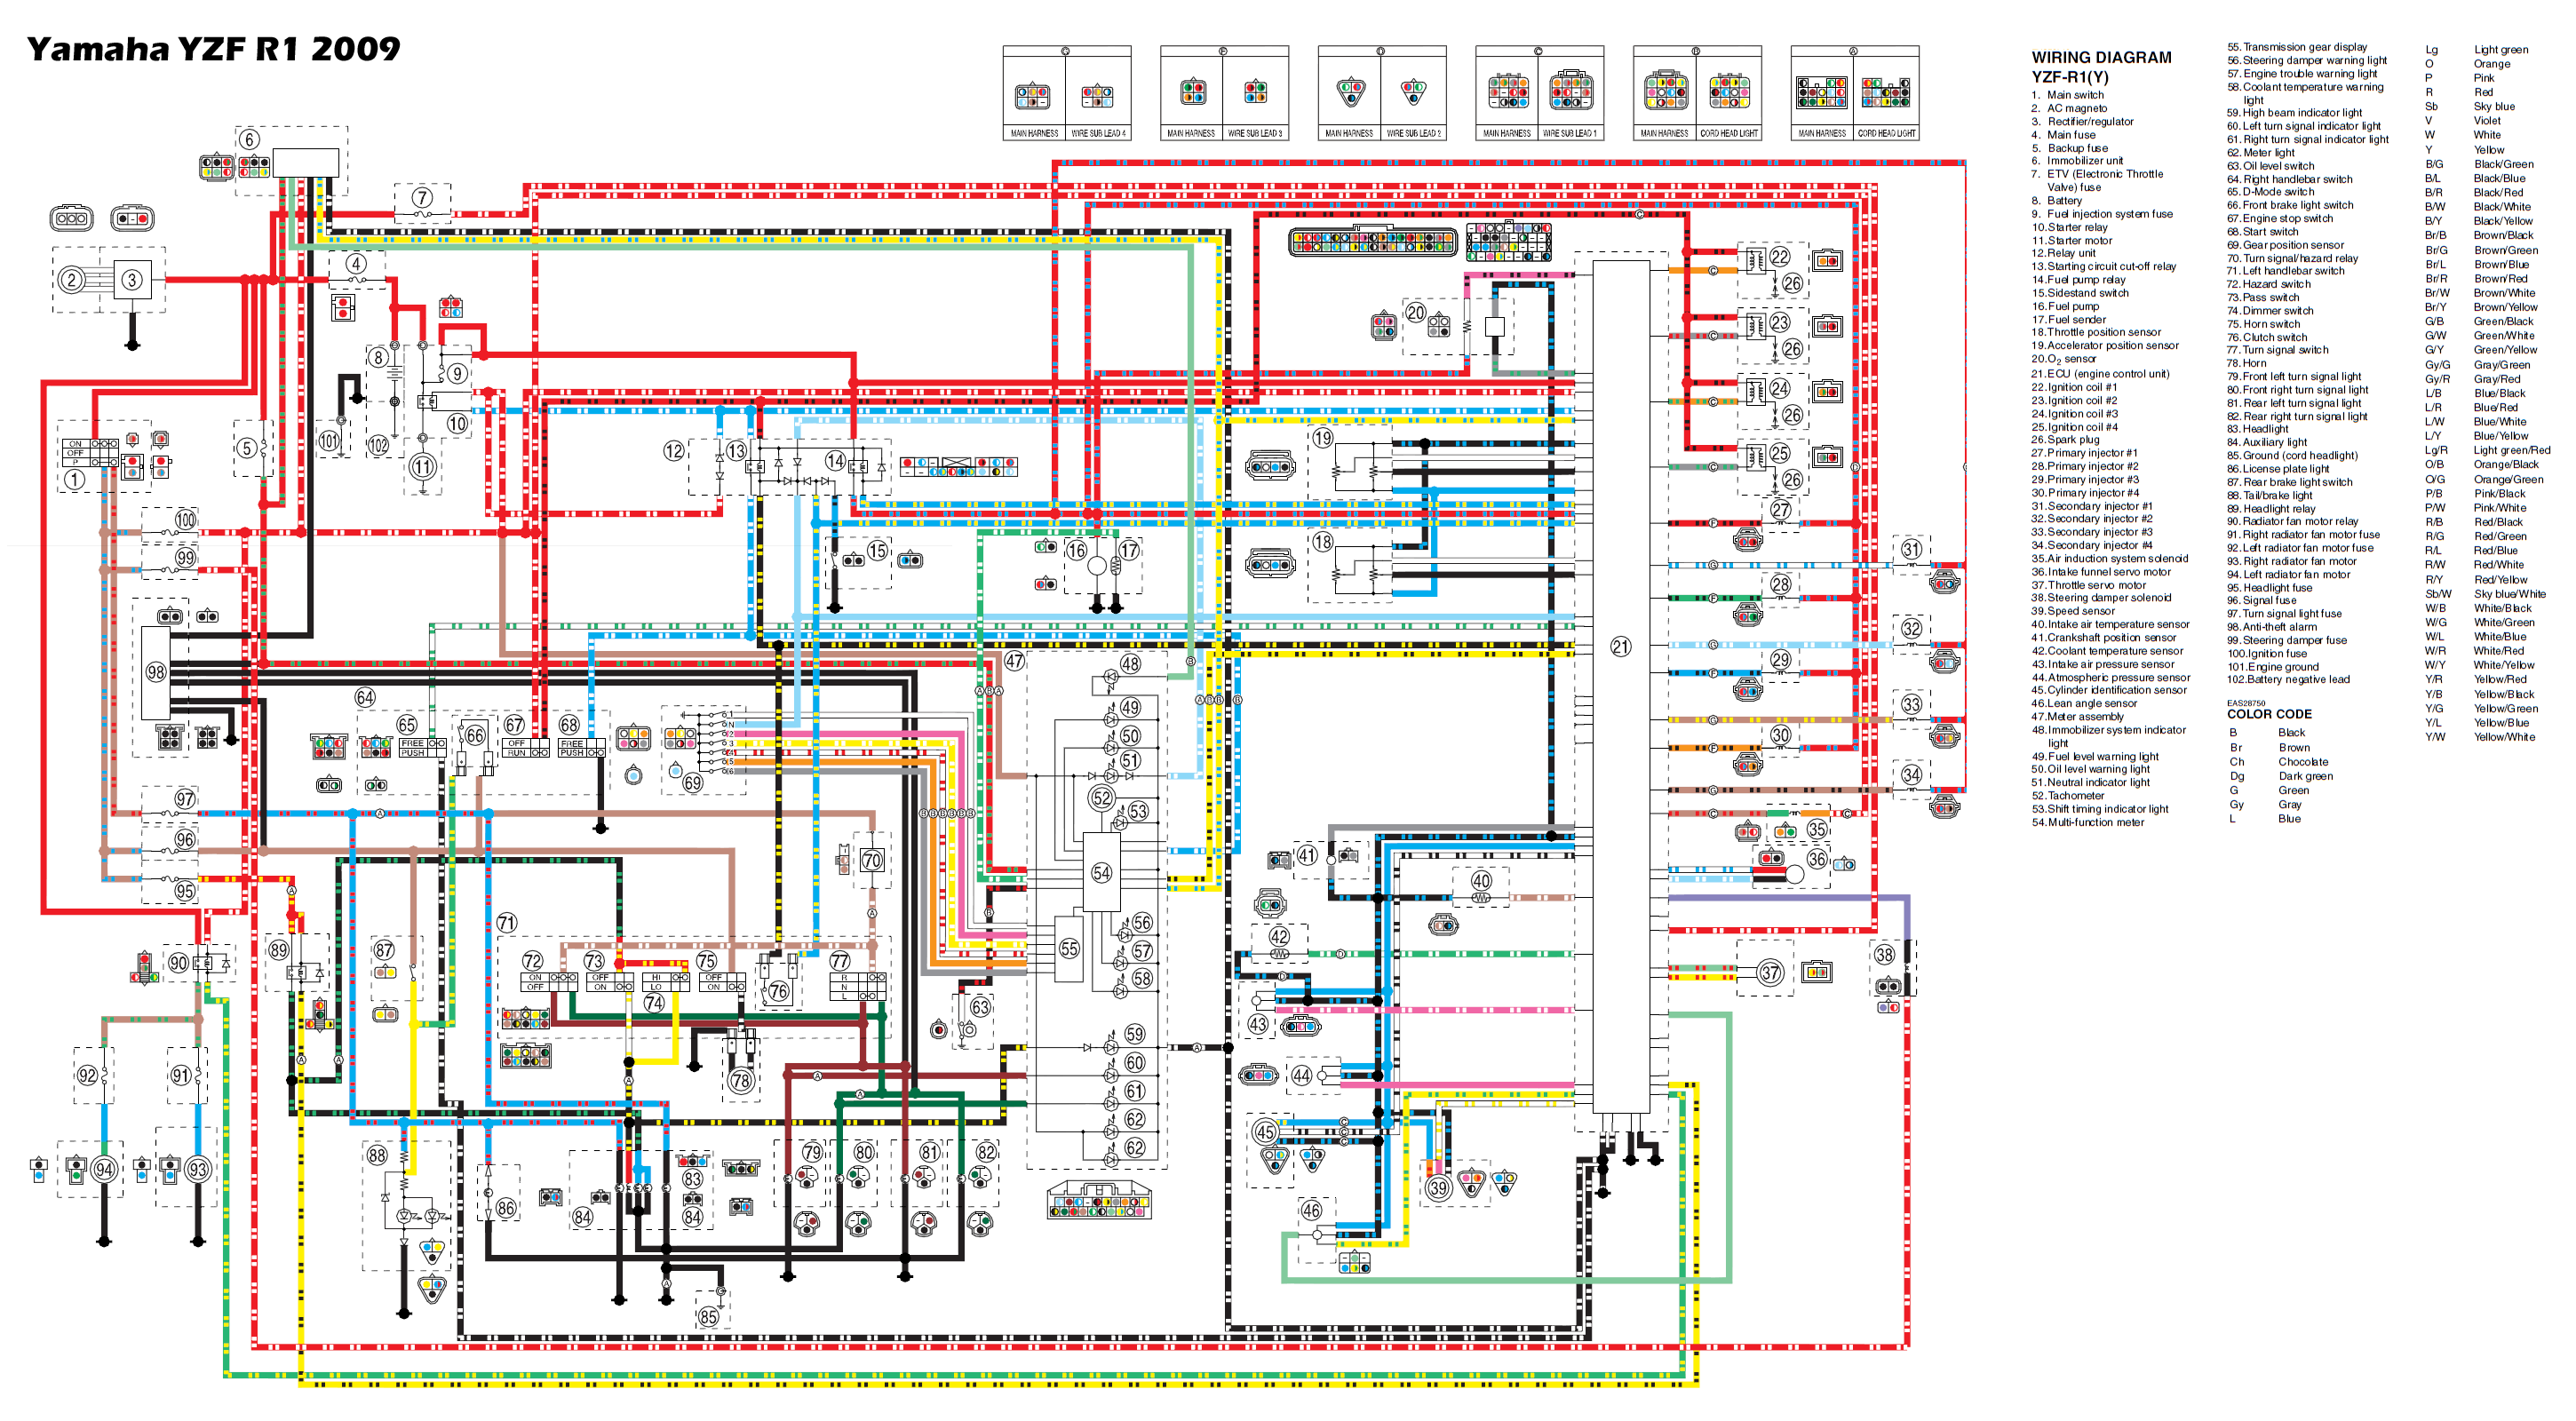 wiring diagrams 2006 yamaha yzf r1 wiring diagram